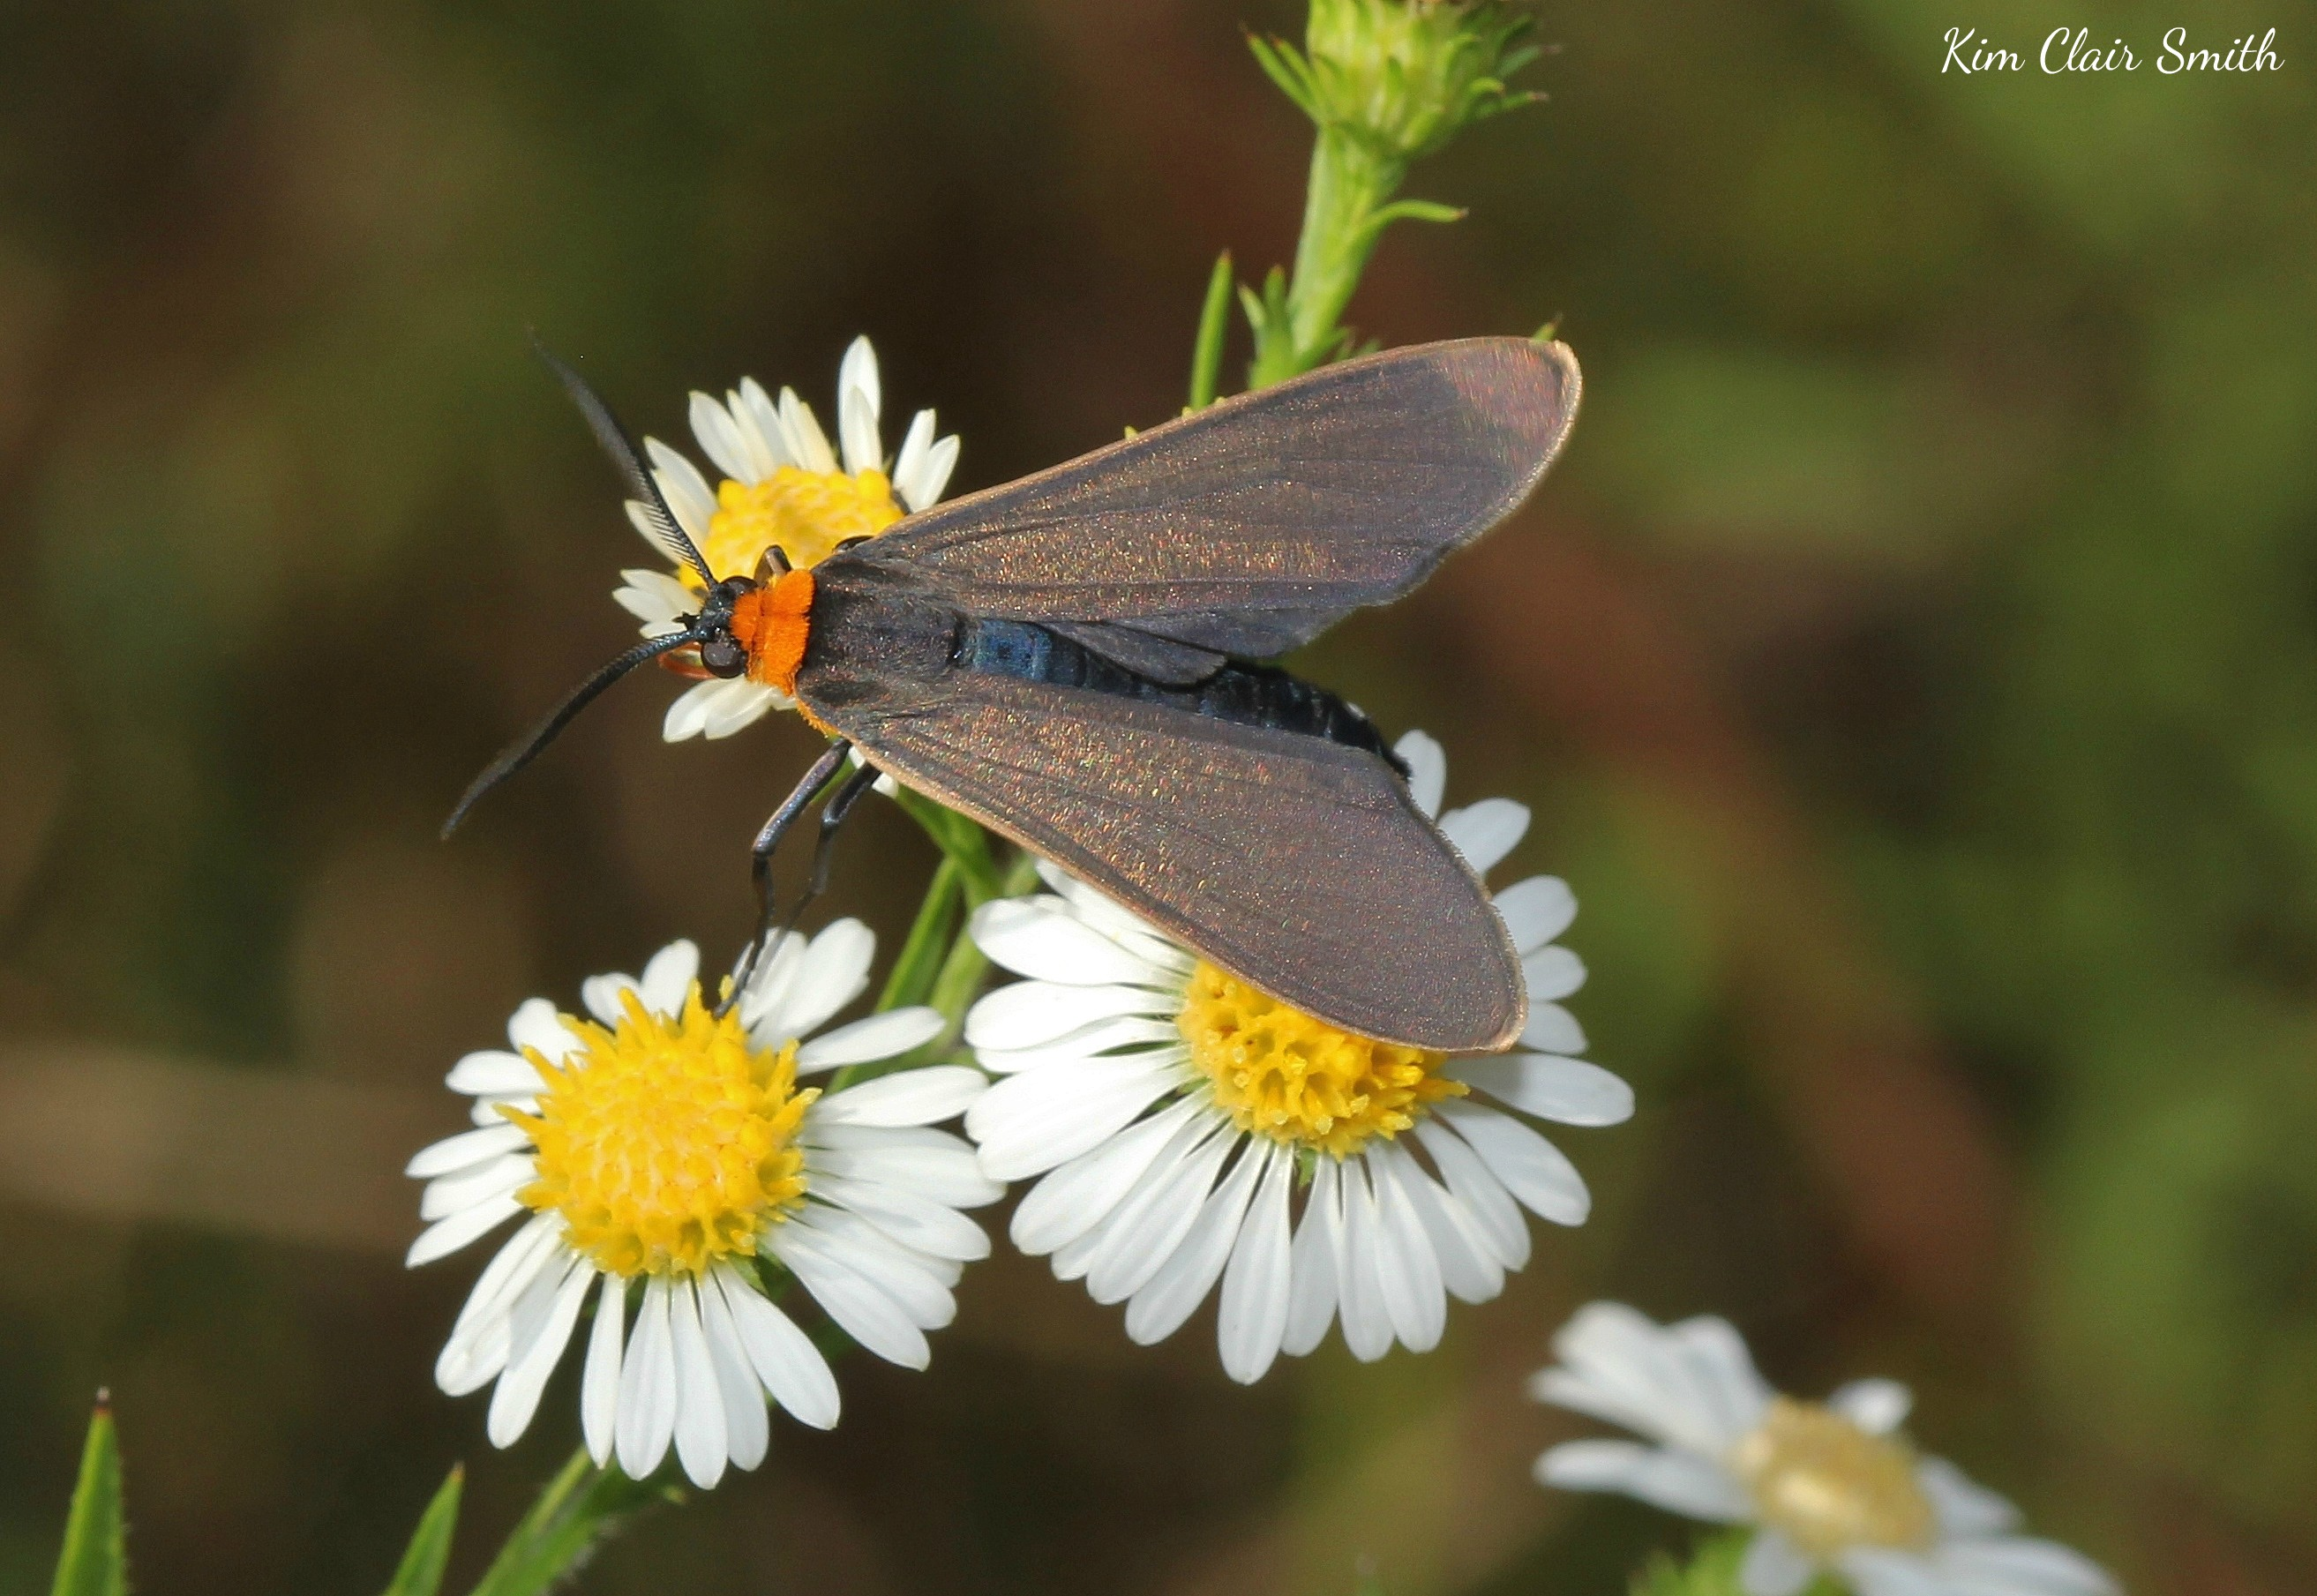 Yellow-collared Scape moth on asters w sig